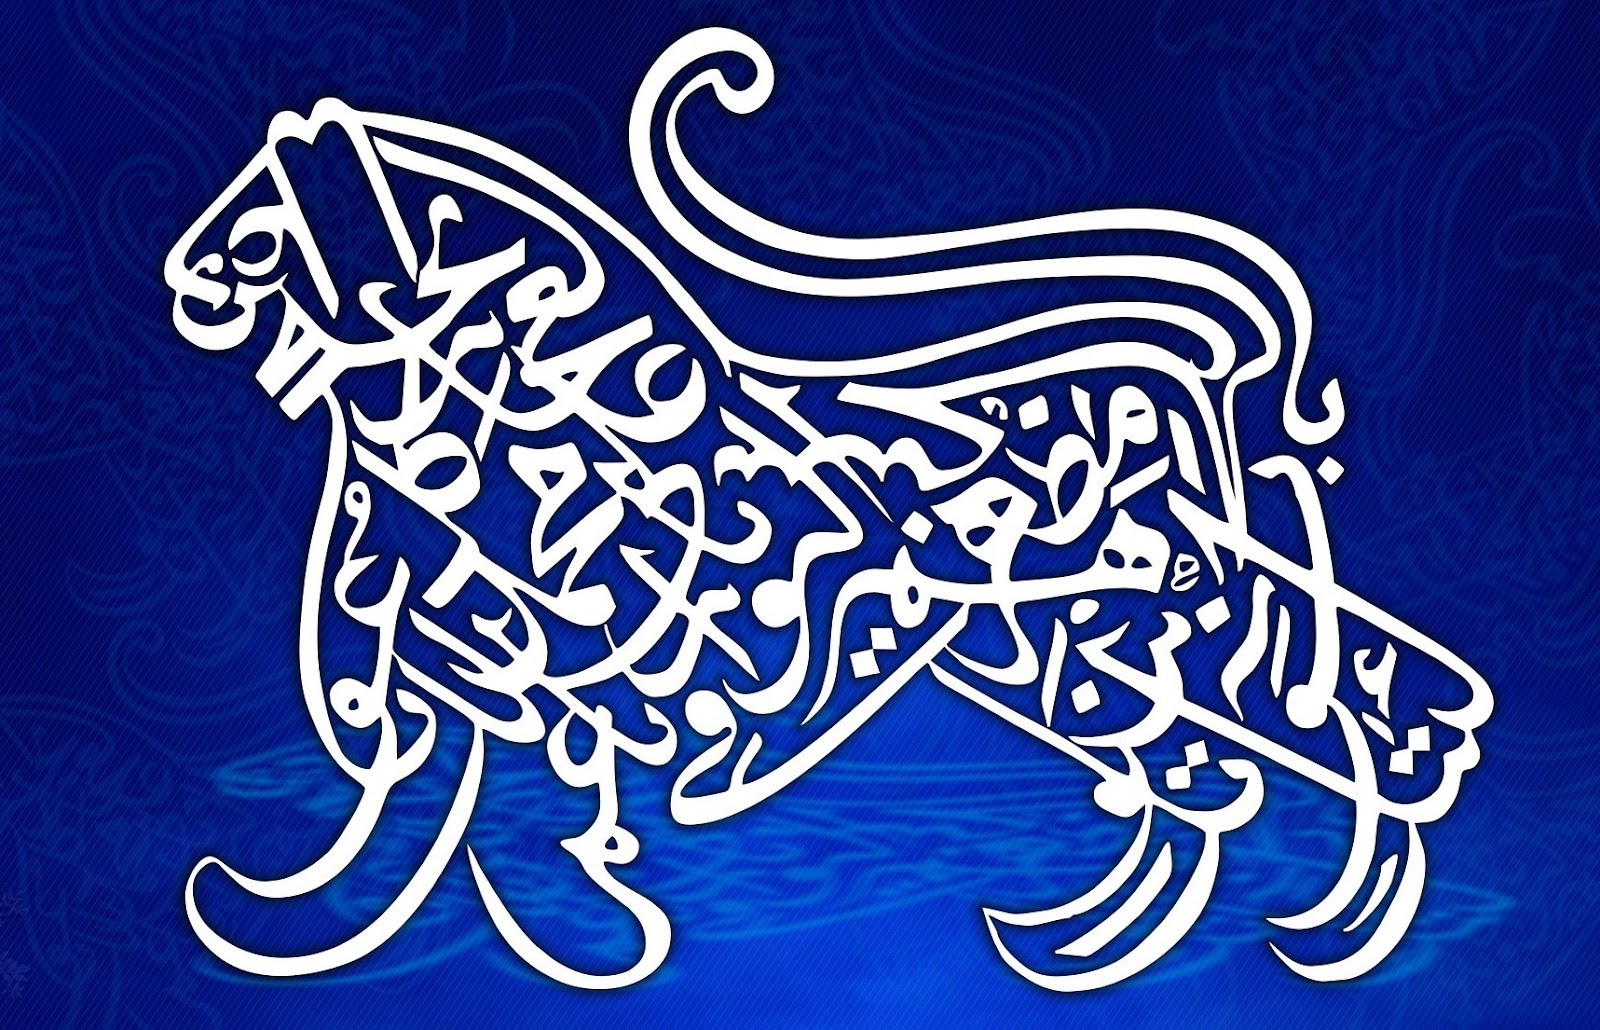 Wallpaper Islamic Kaligrafi Islam Calligraphy